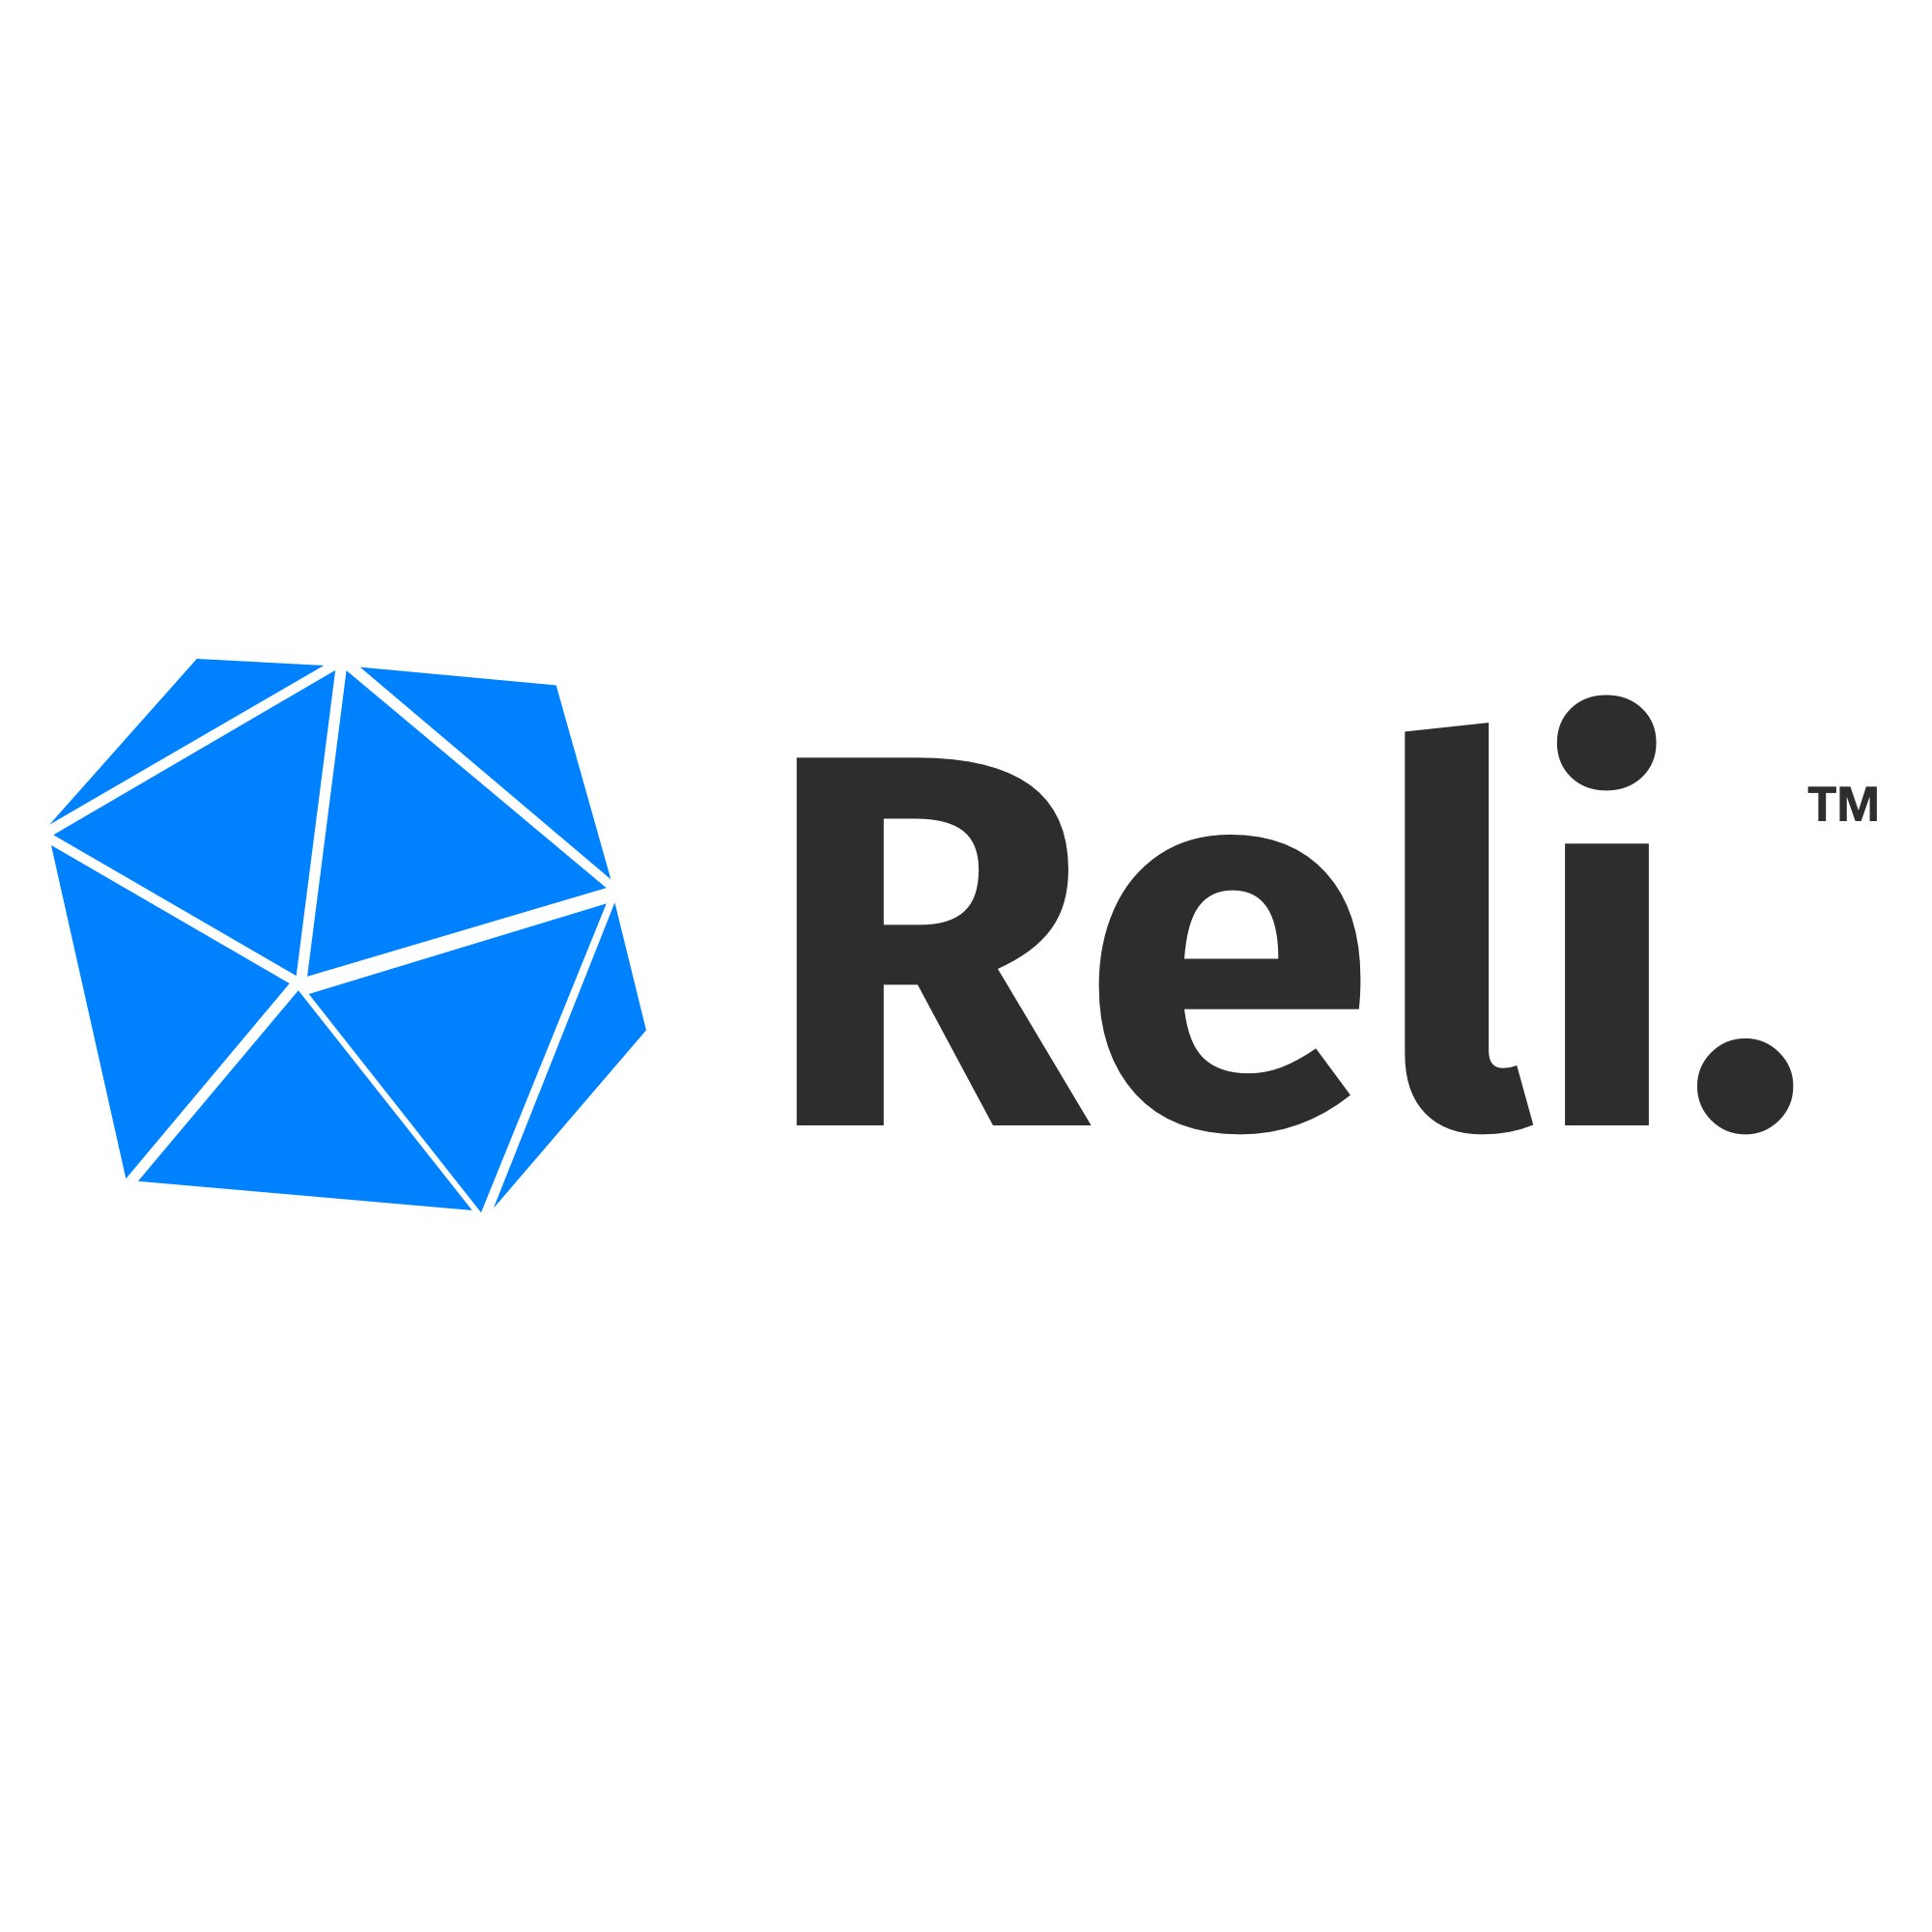 Reli. Mobile Masking Station, 3-Tier Multi-Roll, Heavy-Duty Steel, Easy Pull - Masking Tree, System for Masking Film or Masking Paper by Reli. (Image #4)